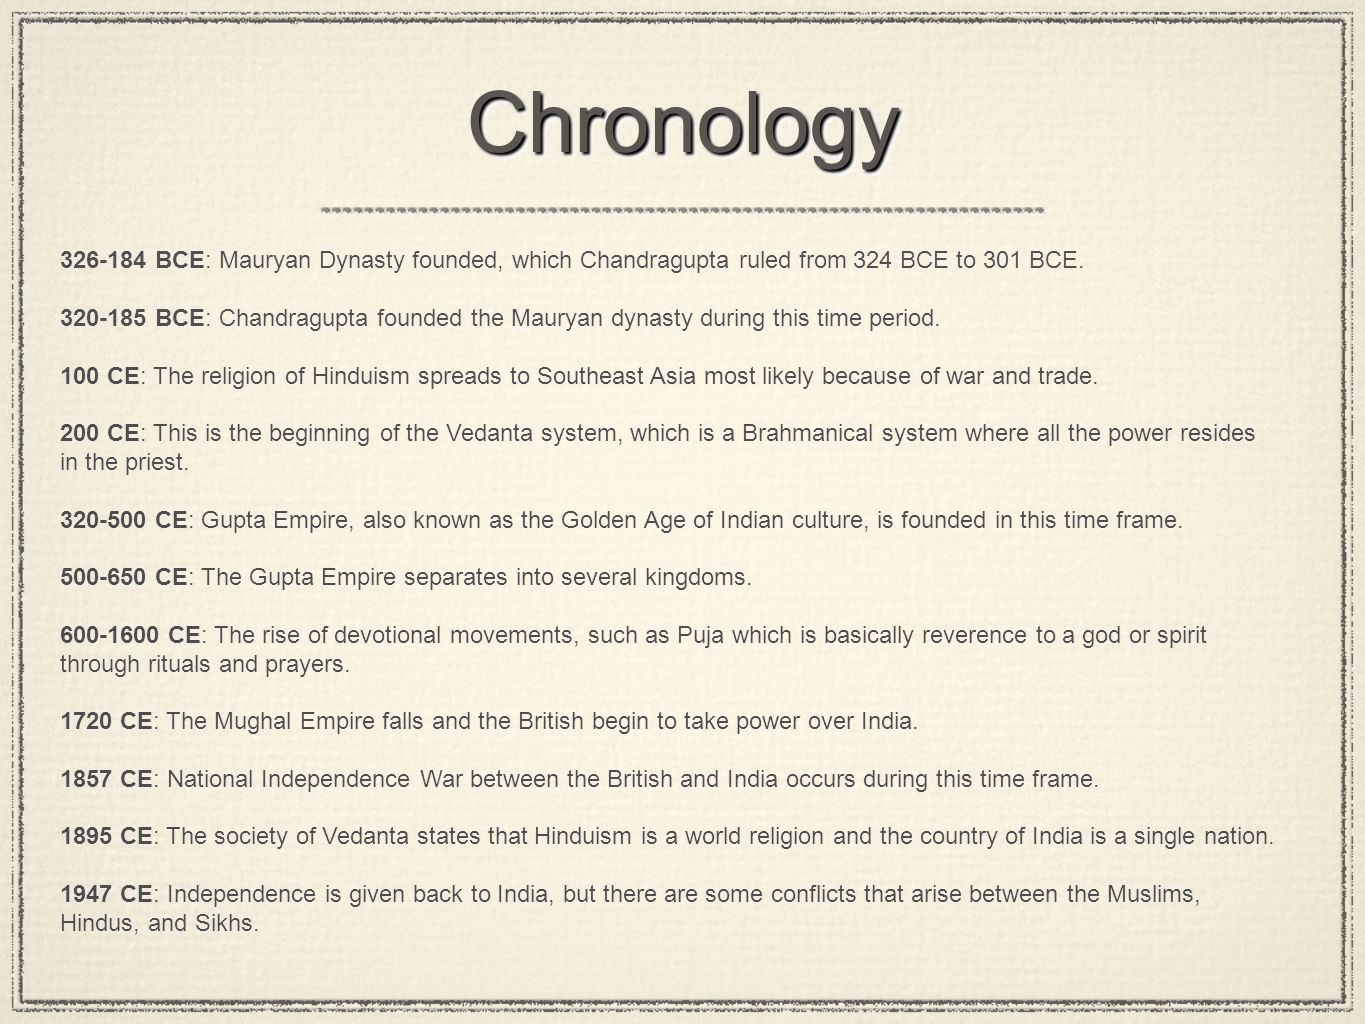 Chronology 326-184 BCE: Mauryan Dynasty founded, which Chandragupta ruled from 324 BCE to 301 BCE.